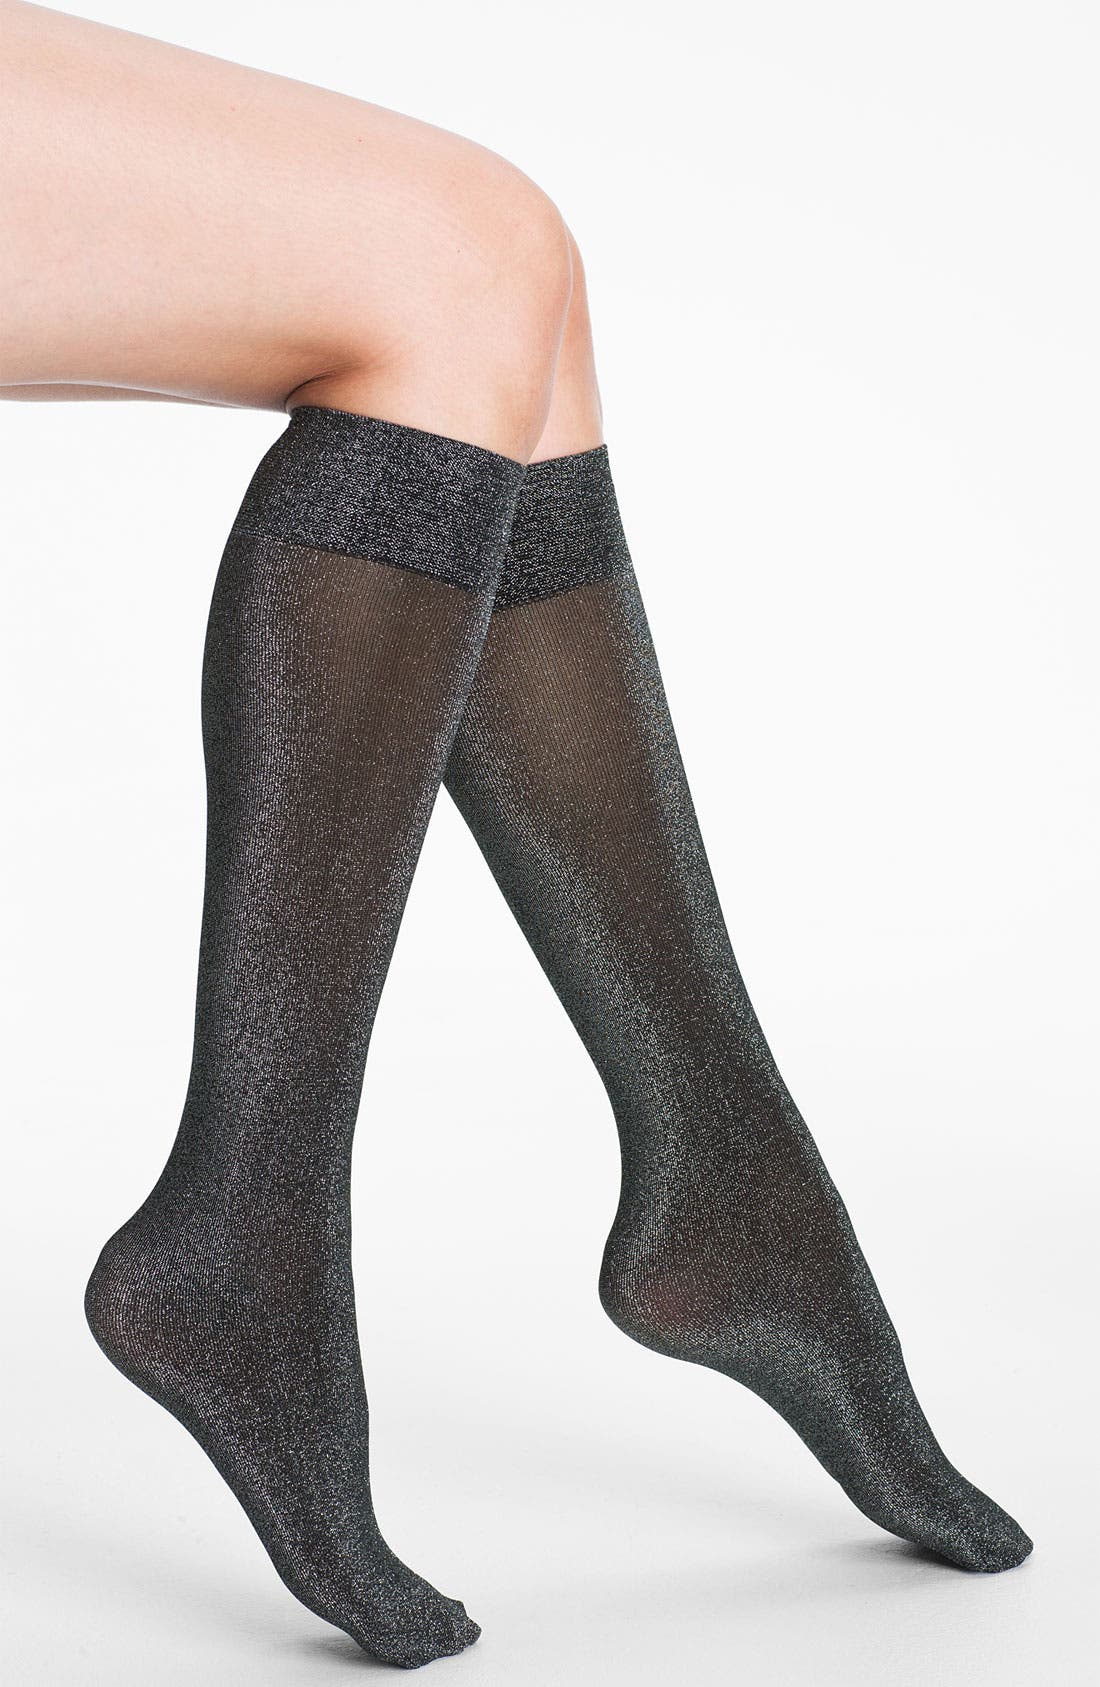 Main Image - Nordstrom 'Sparkle' Trouser Socks